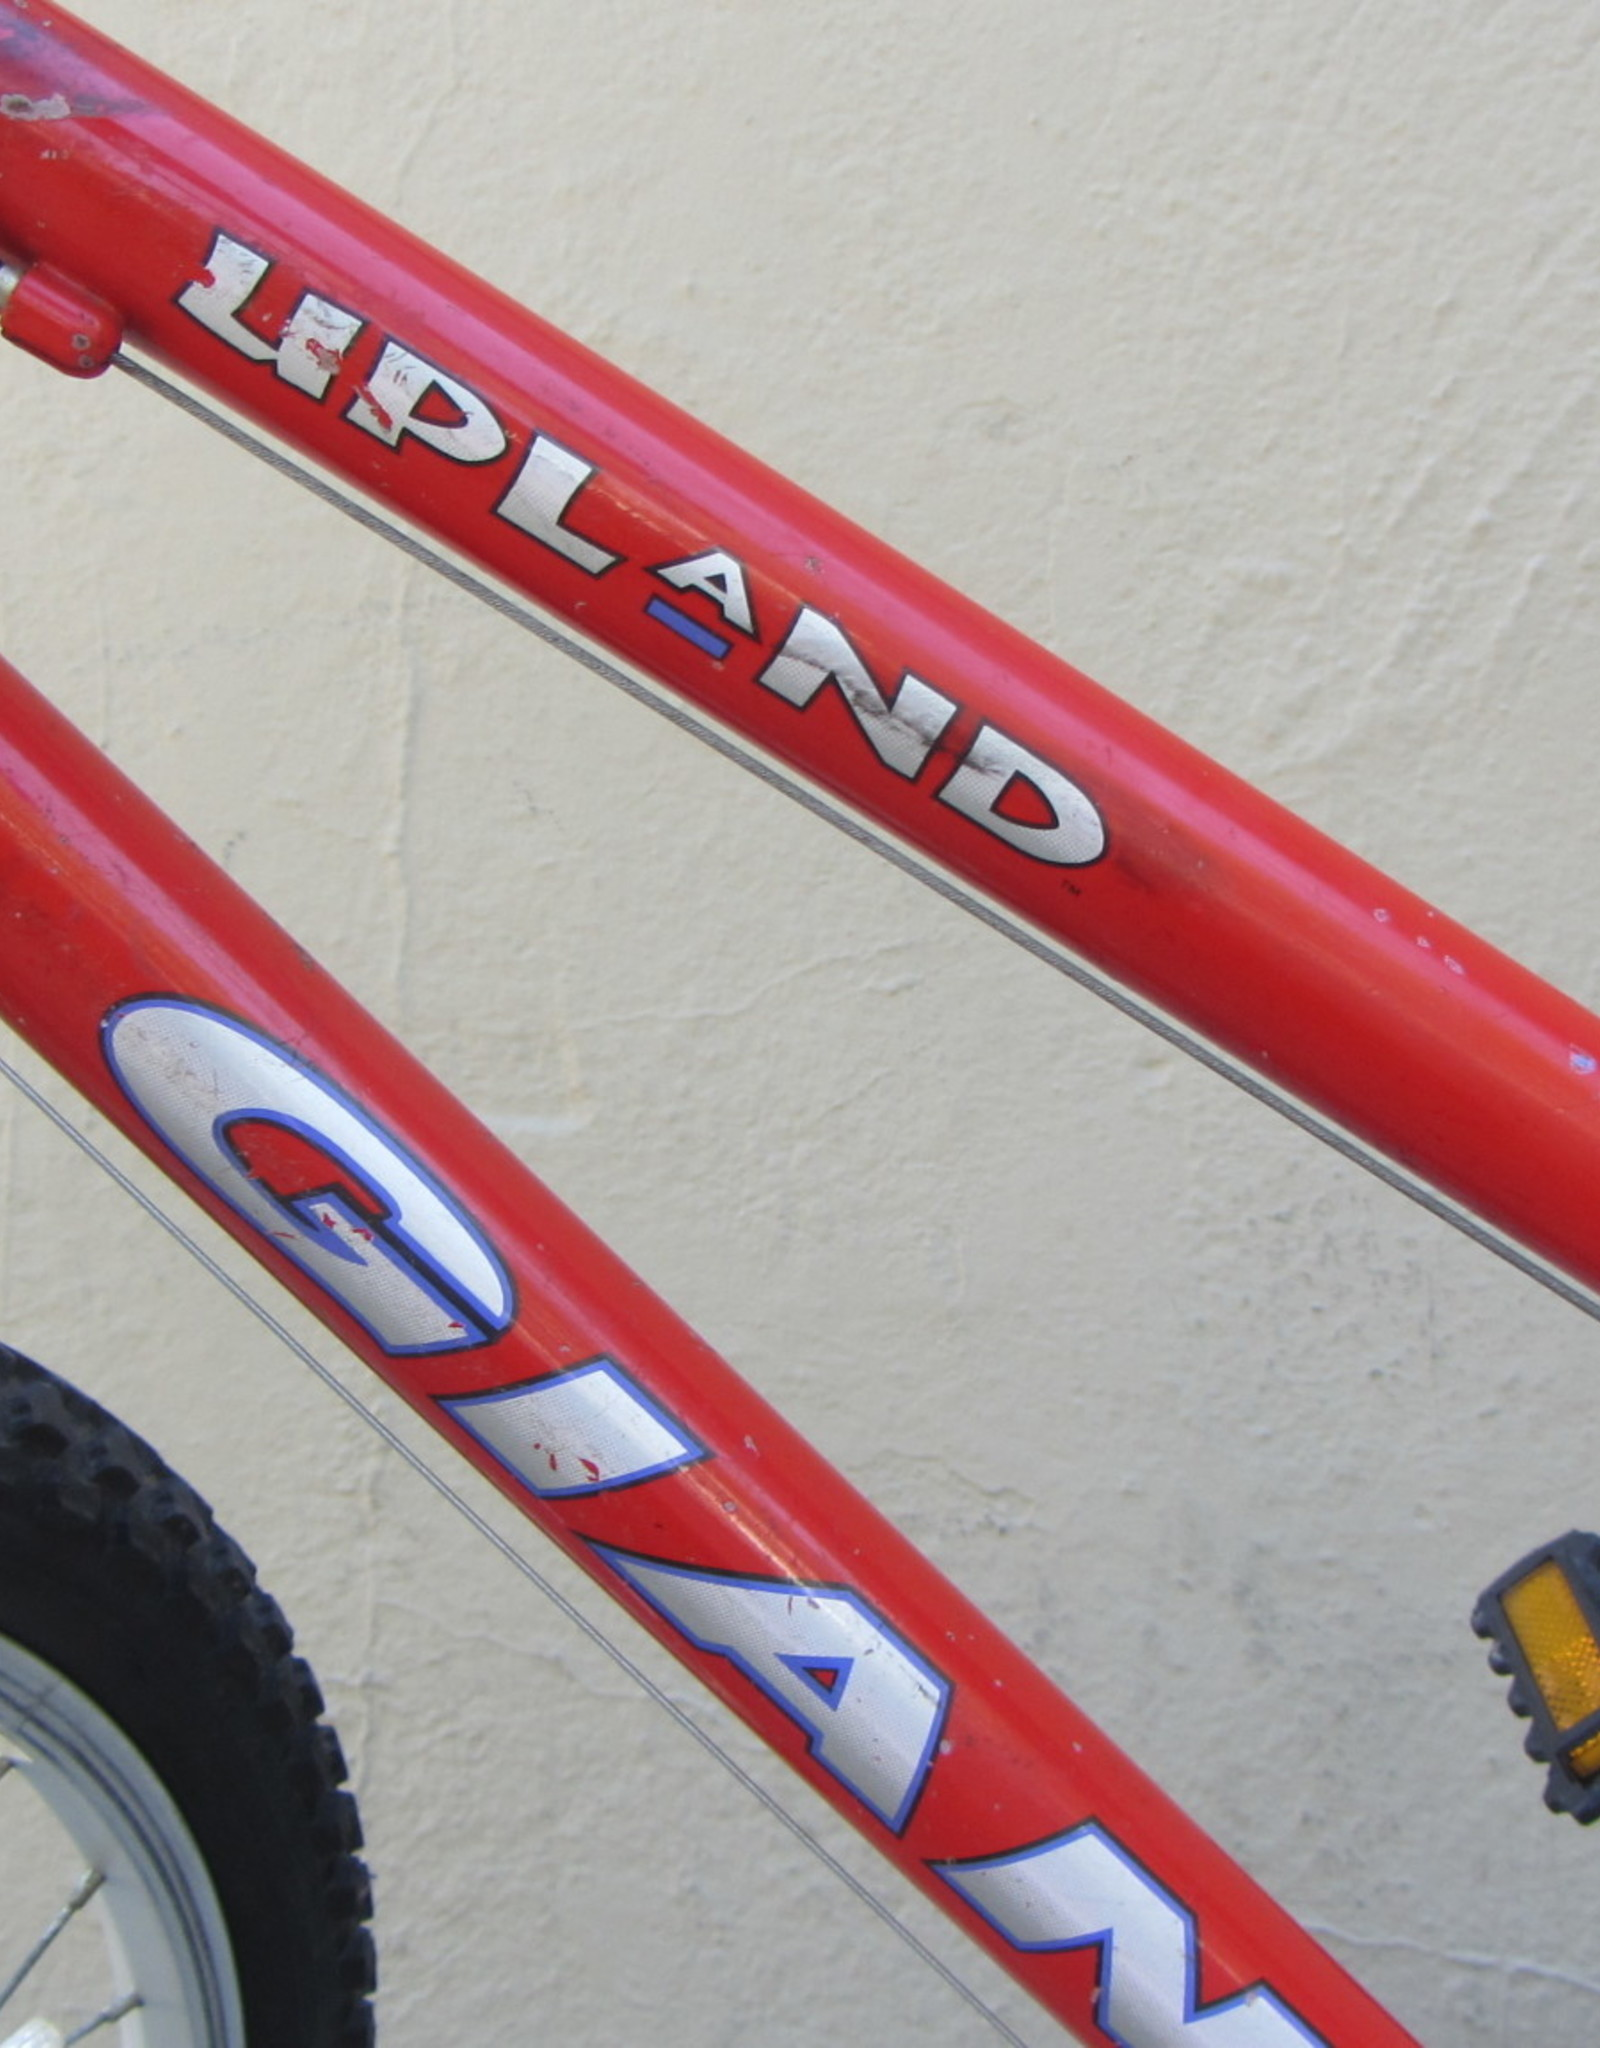 Giant Giant Upland Vintage Mountain, 1997, Red, 16 Inch (Small)